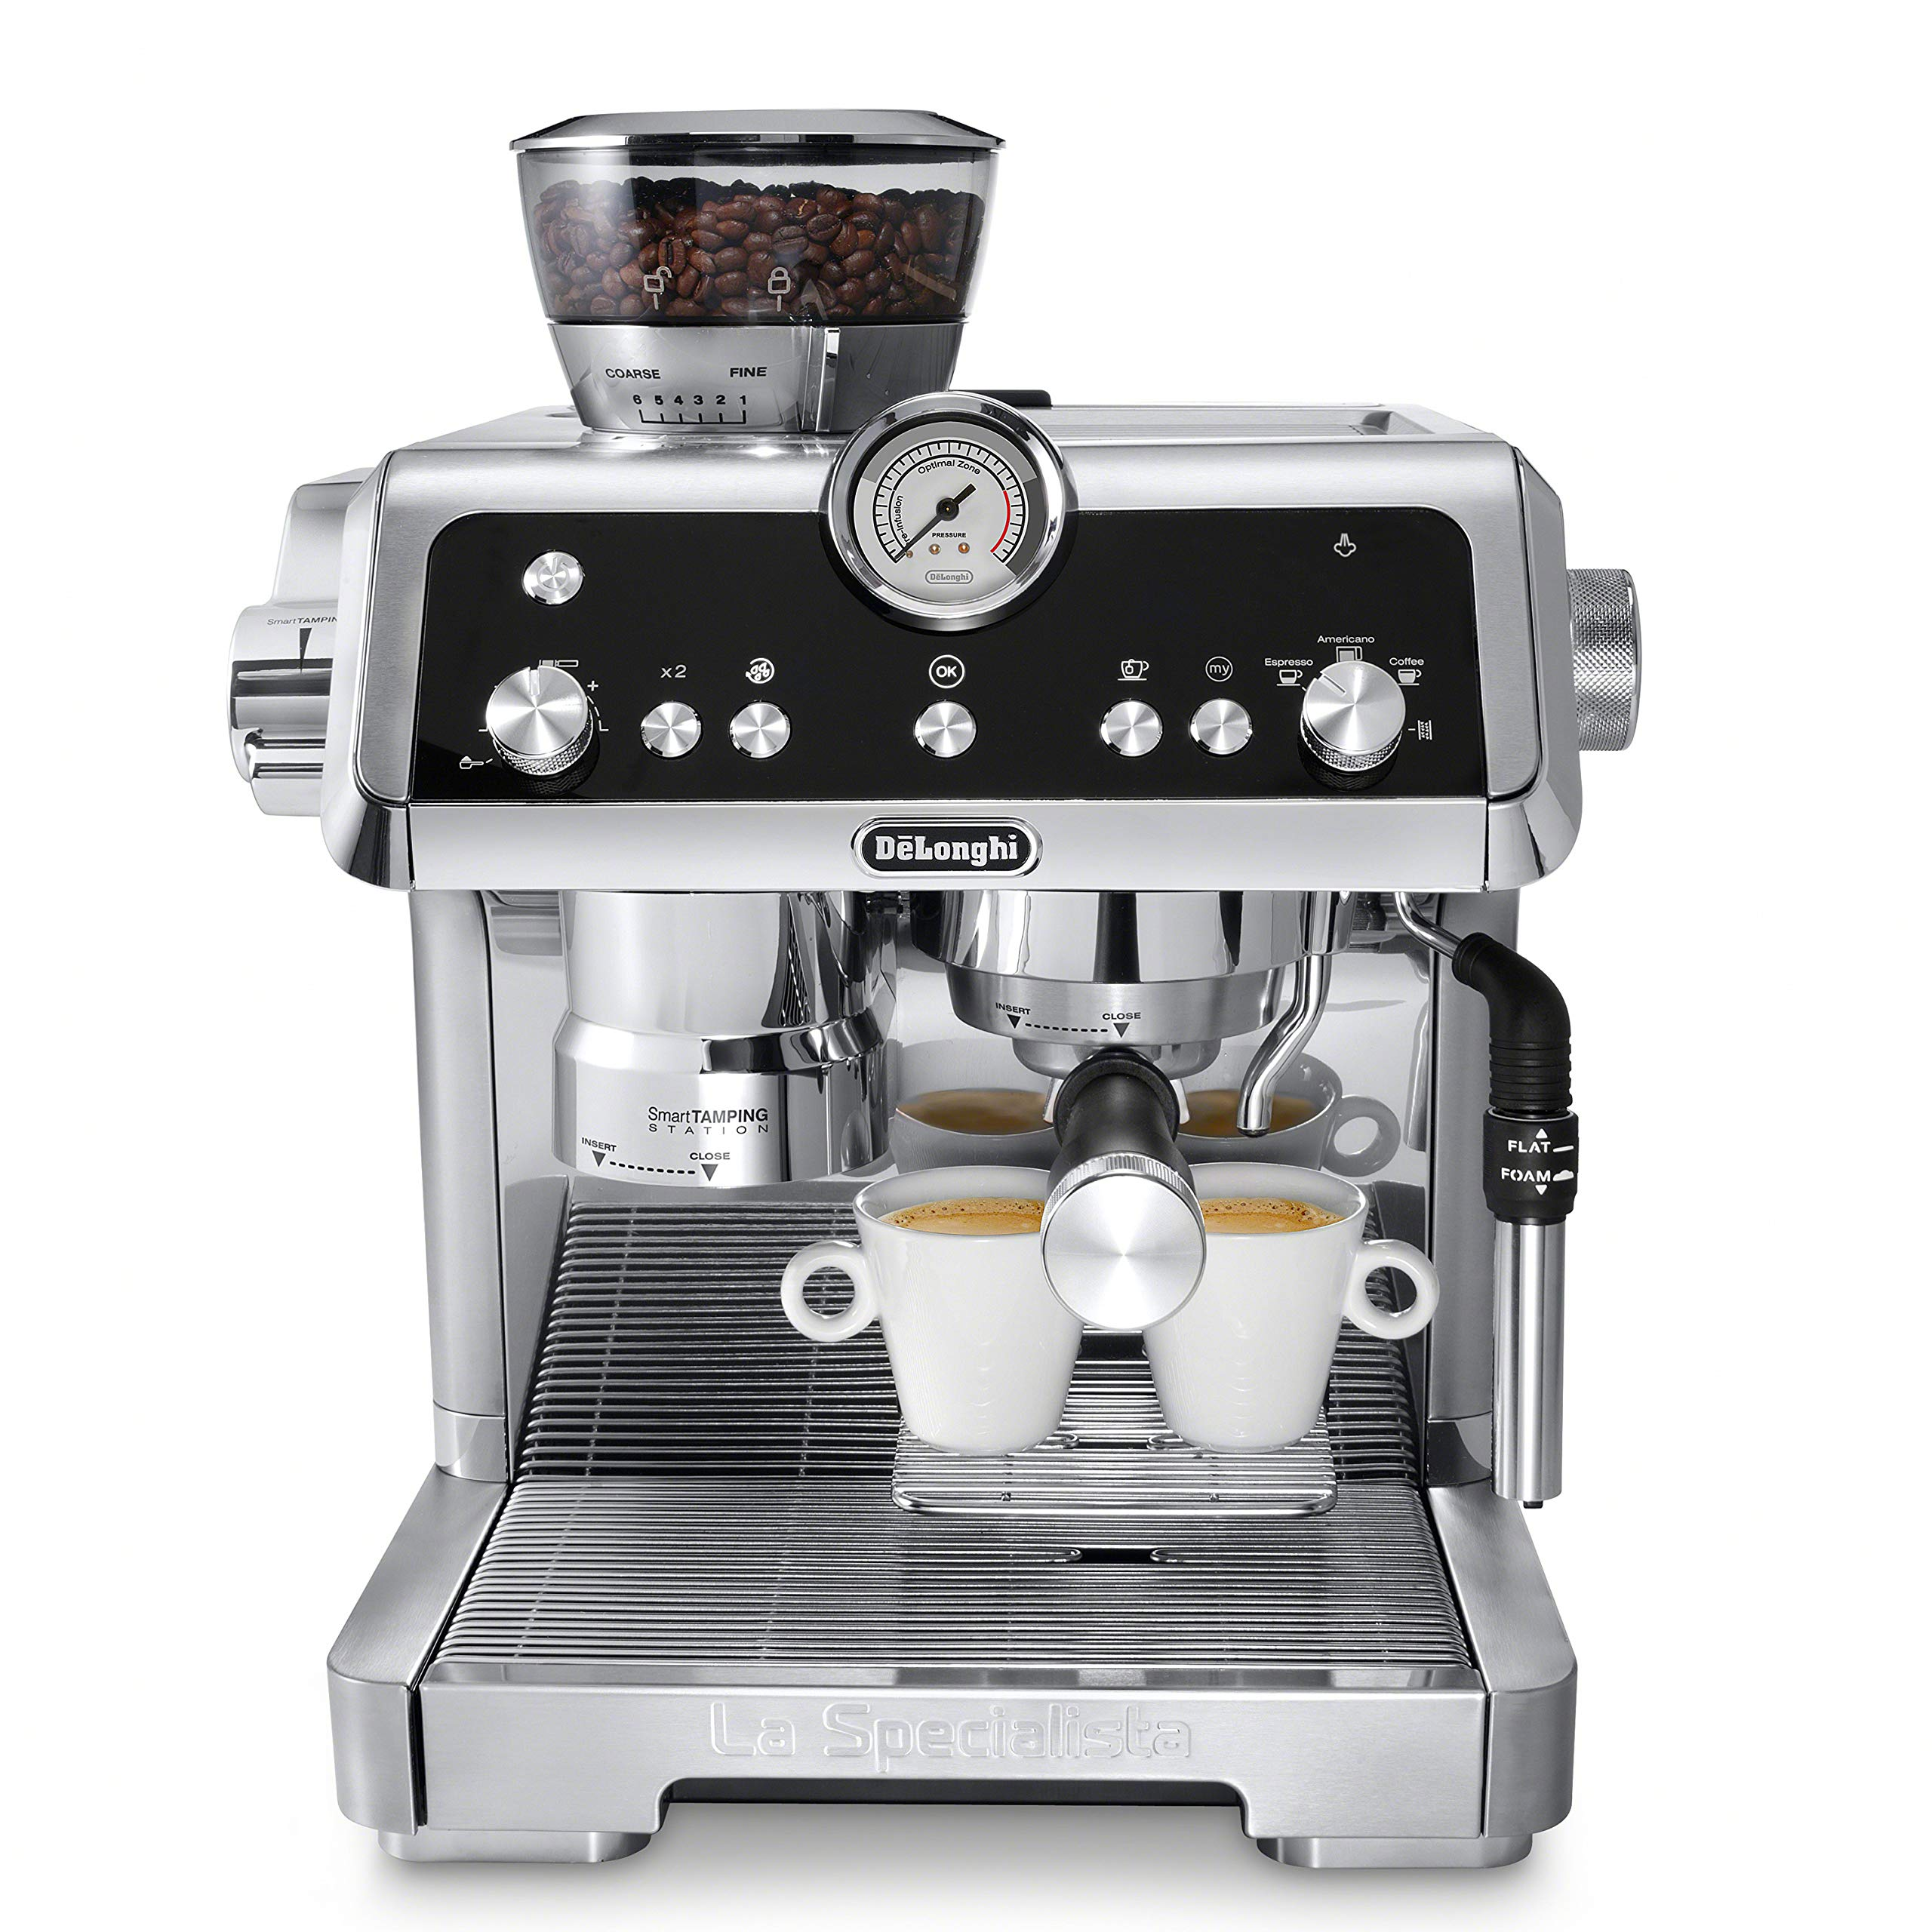 De'Longhi EC9335M La Specialista Espresso Machine with Sensor Grinder, Dual Heating System, Advanced Latte System & Hot Water Spout for Americano Coffee or Tea, Stainless Steel by De'Longhi